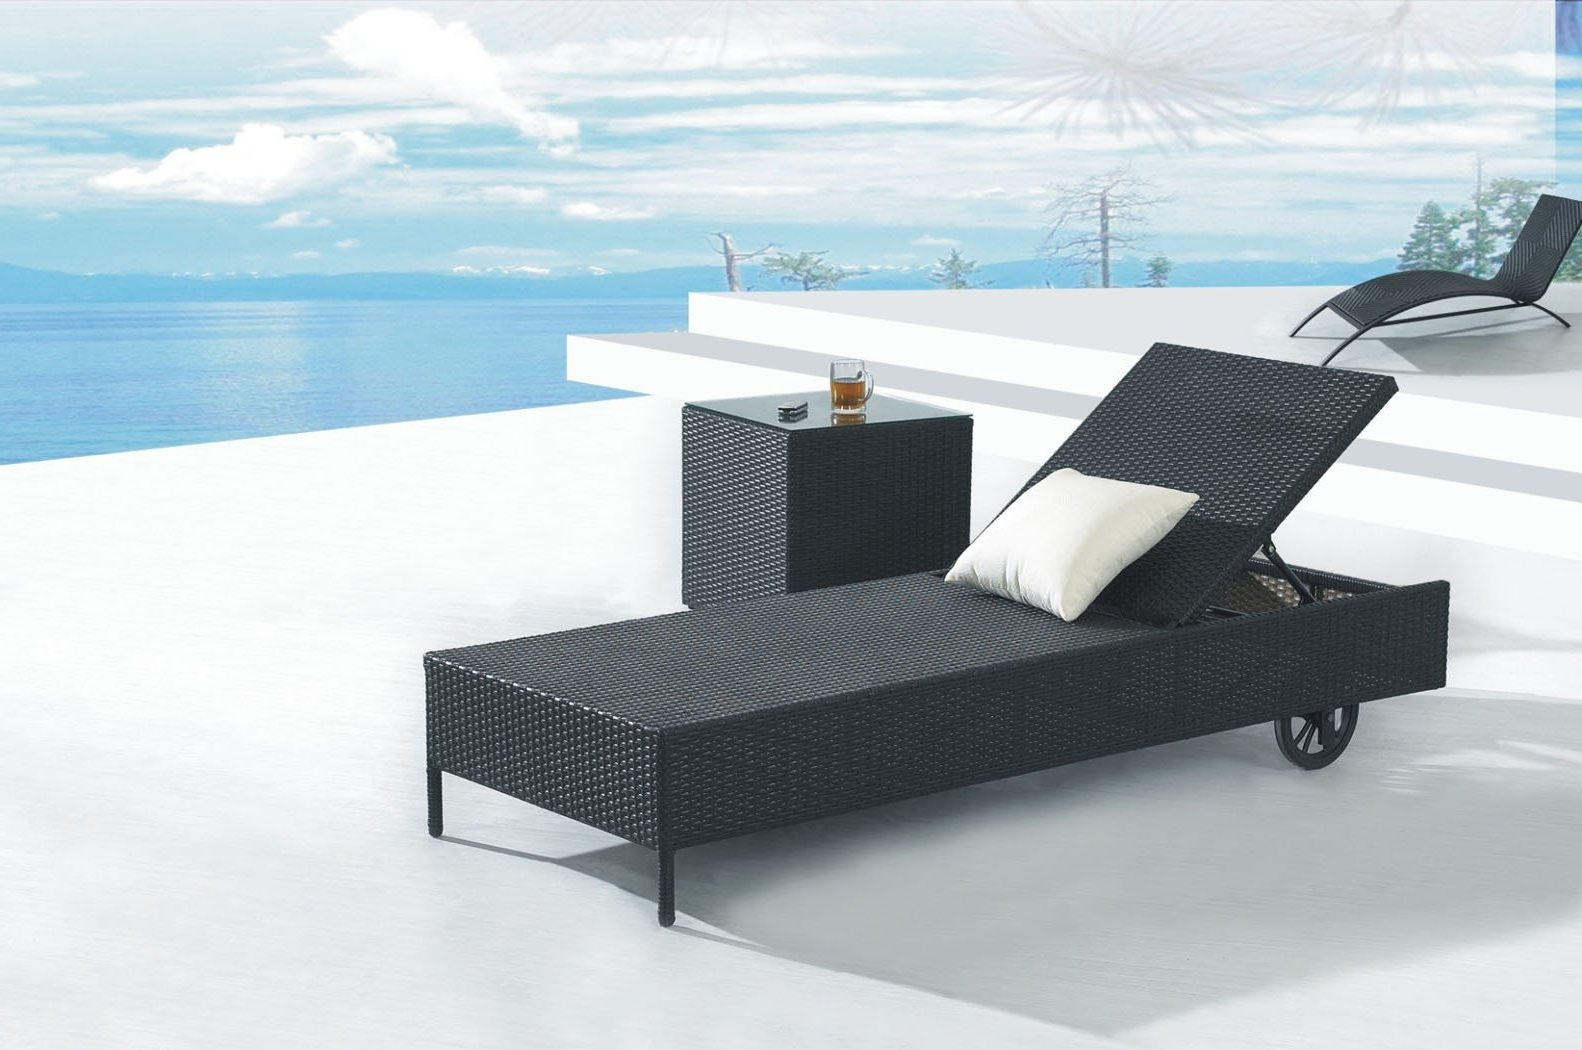 Most Popular Black Chaise Lounge Outdoor Chairs Pertaining To Decorating Pool Chaise Lounge Chairs — Bed And Shower (View 8 of 15)